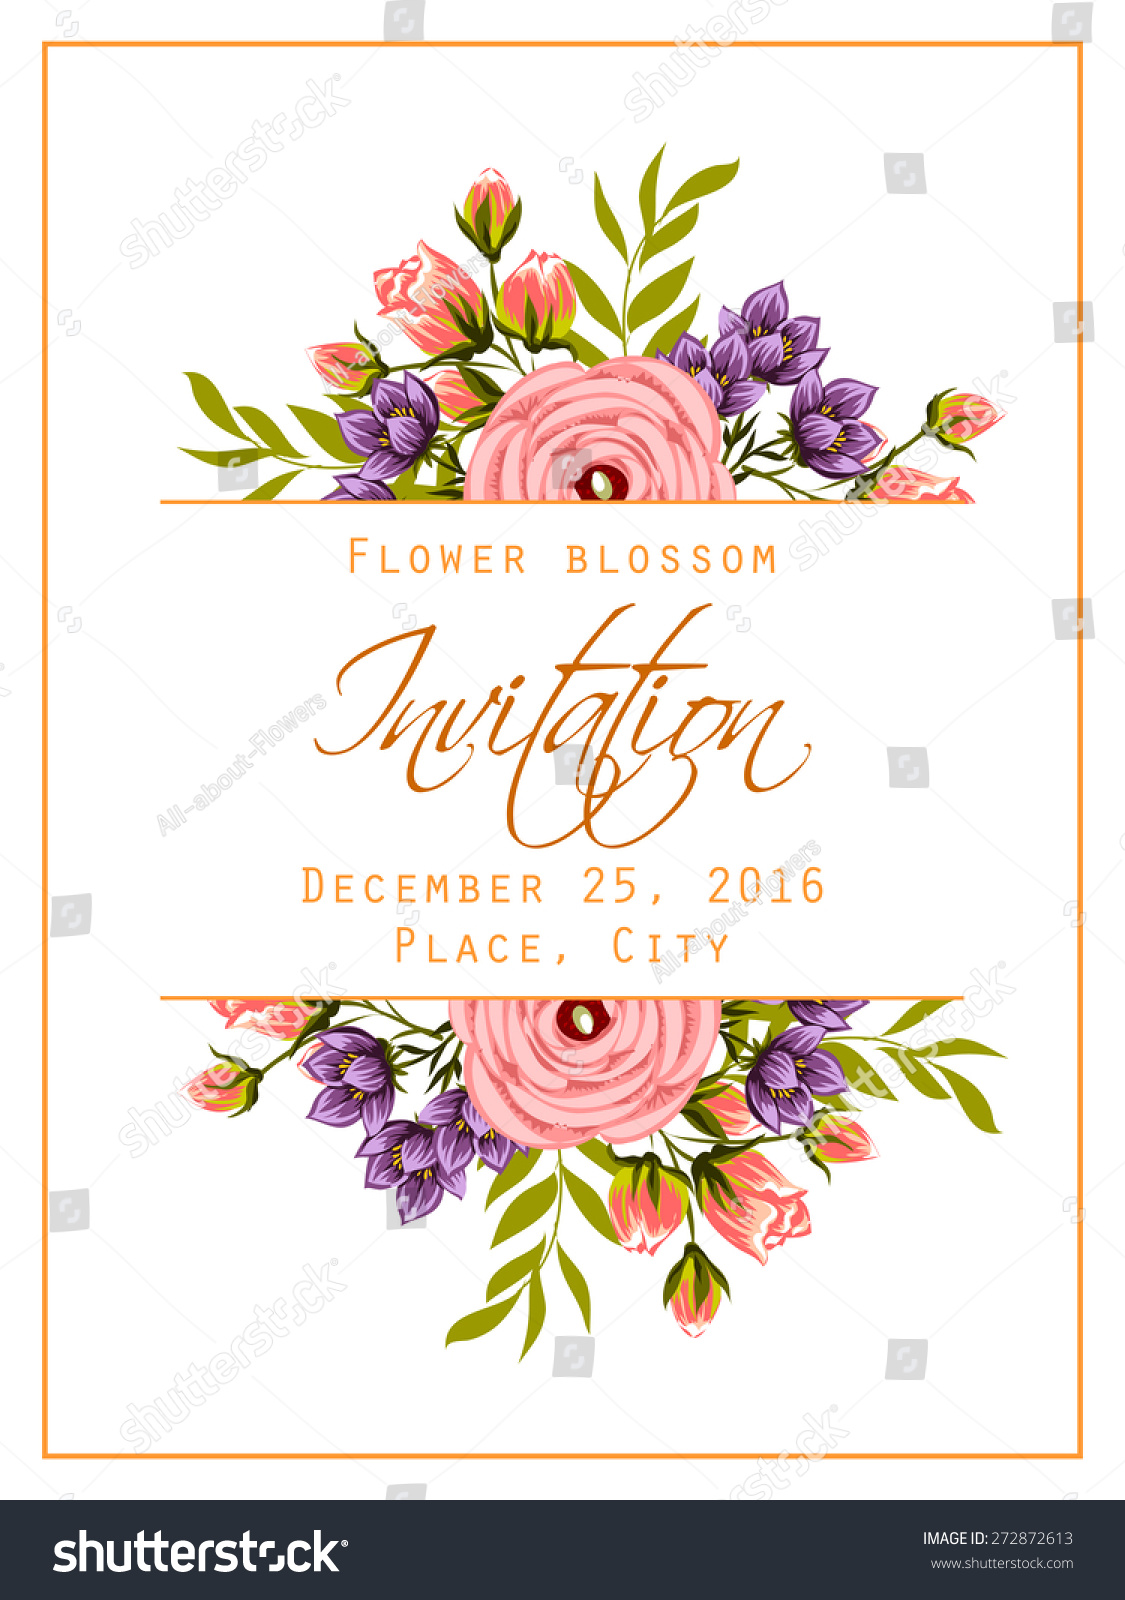 Flower Blossom Romantic Botanical Invitation Greeting Card With